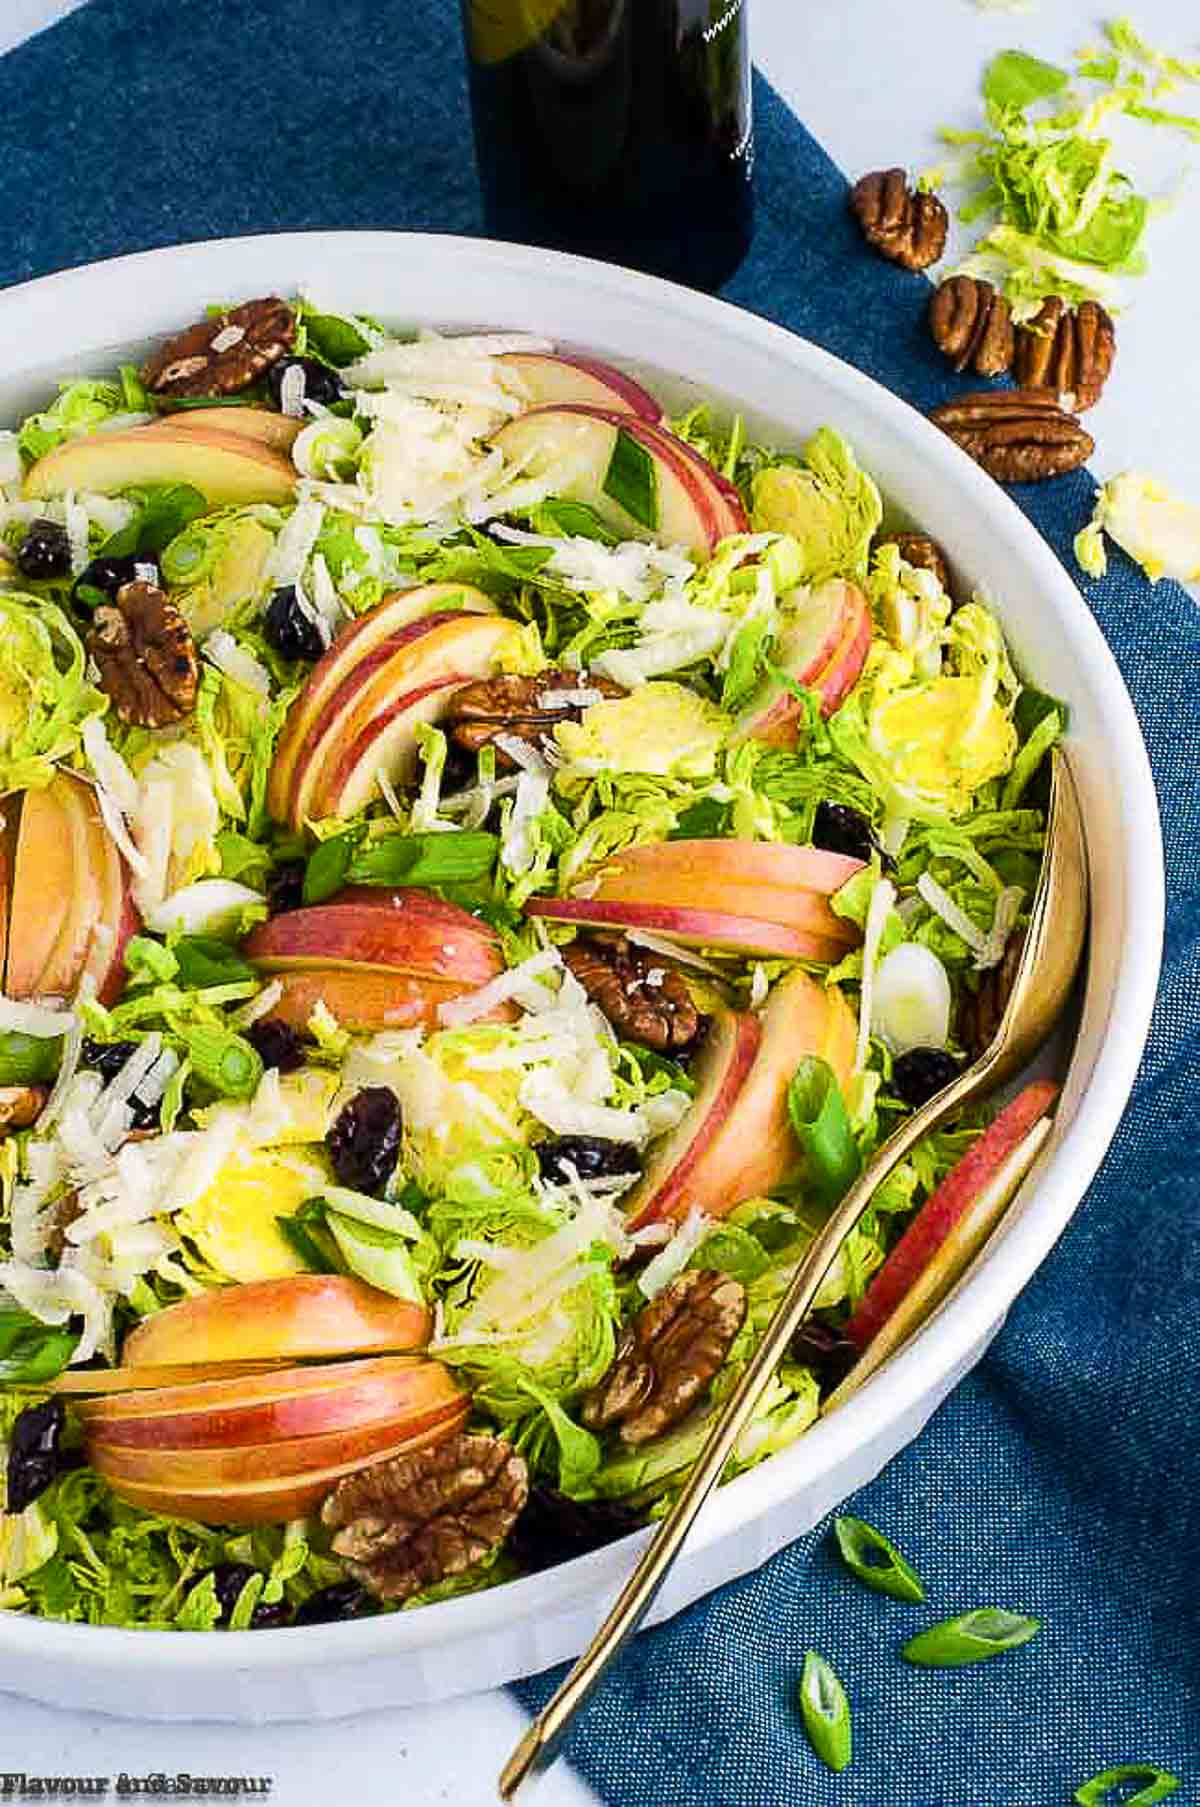 Shaved Brussels Sprouts salad with thinly sliced apples